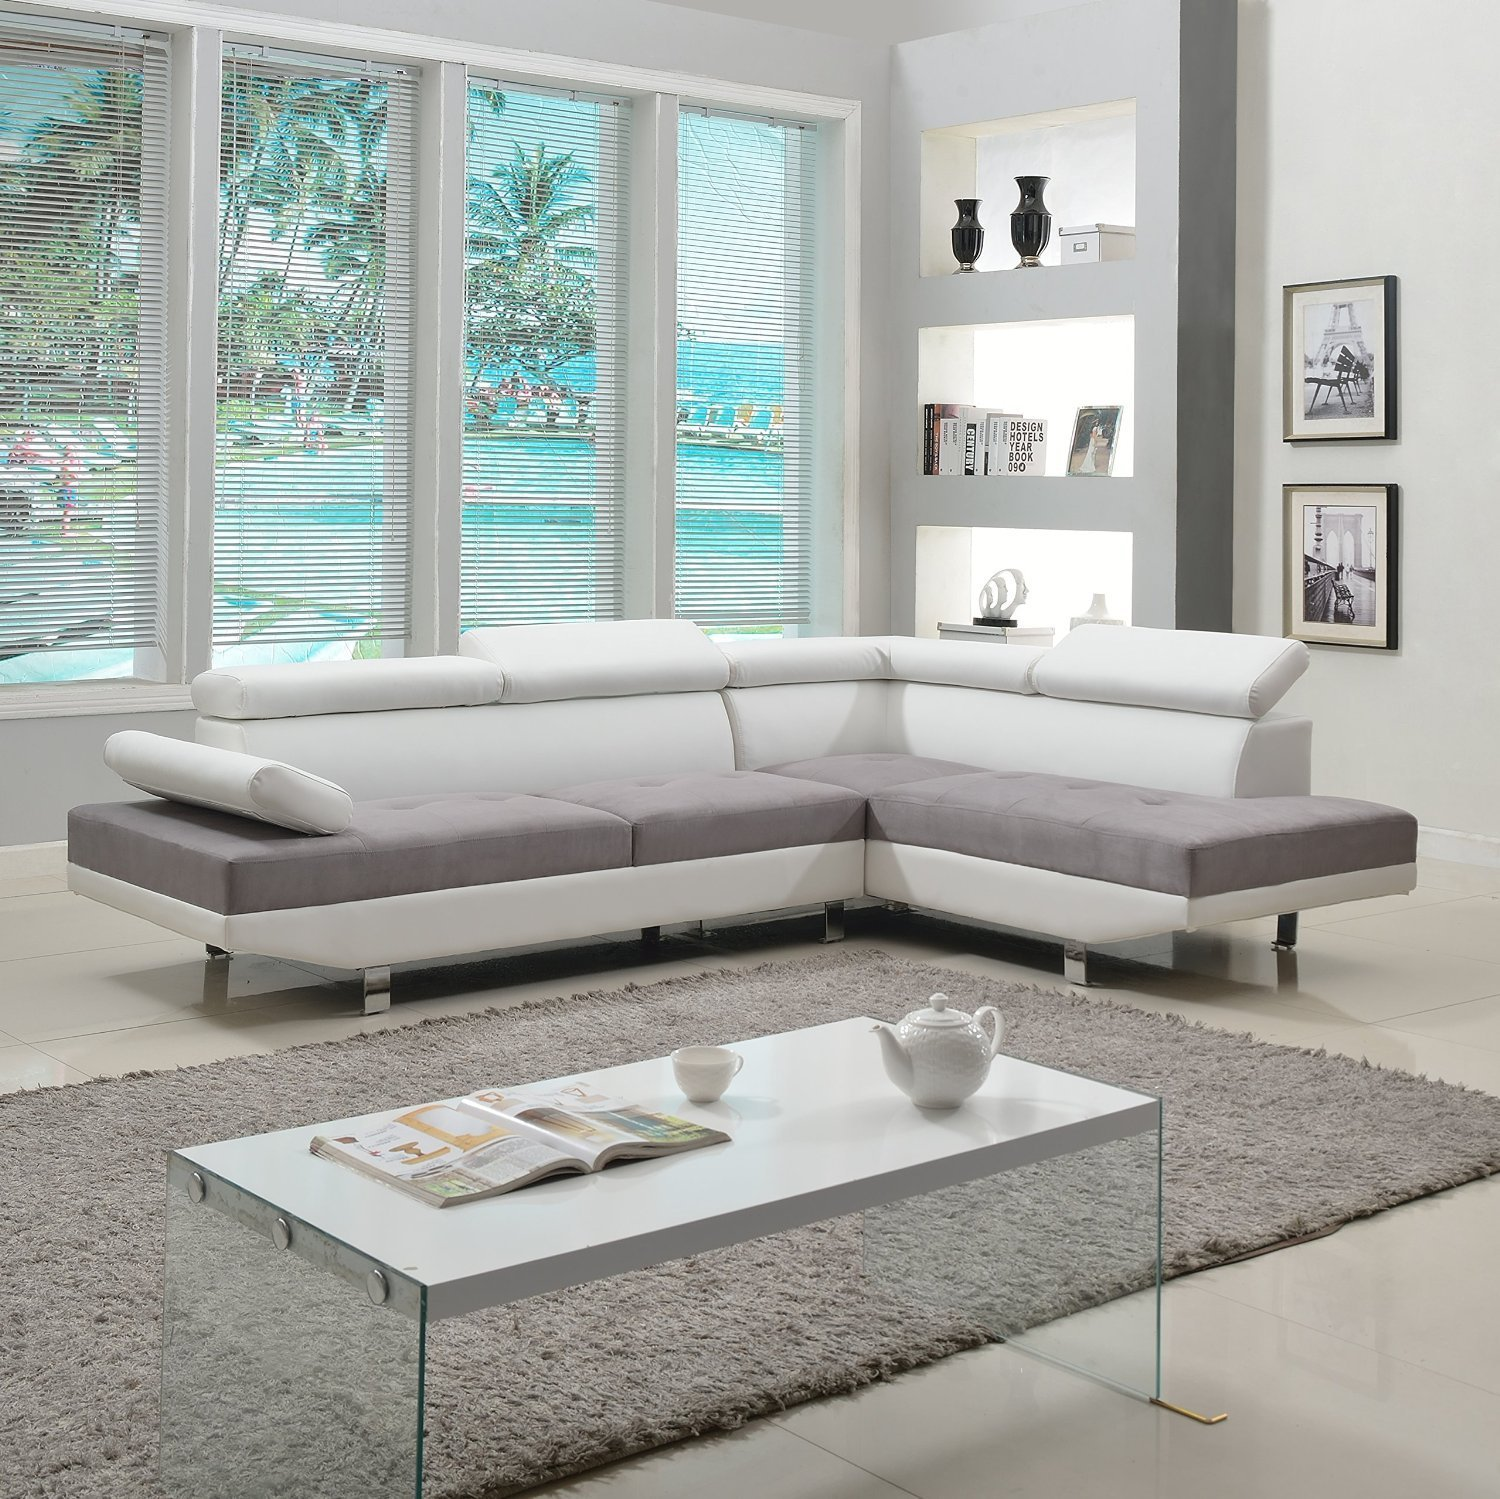 Modern living room furniture review find the best one for Modern living room couches